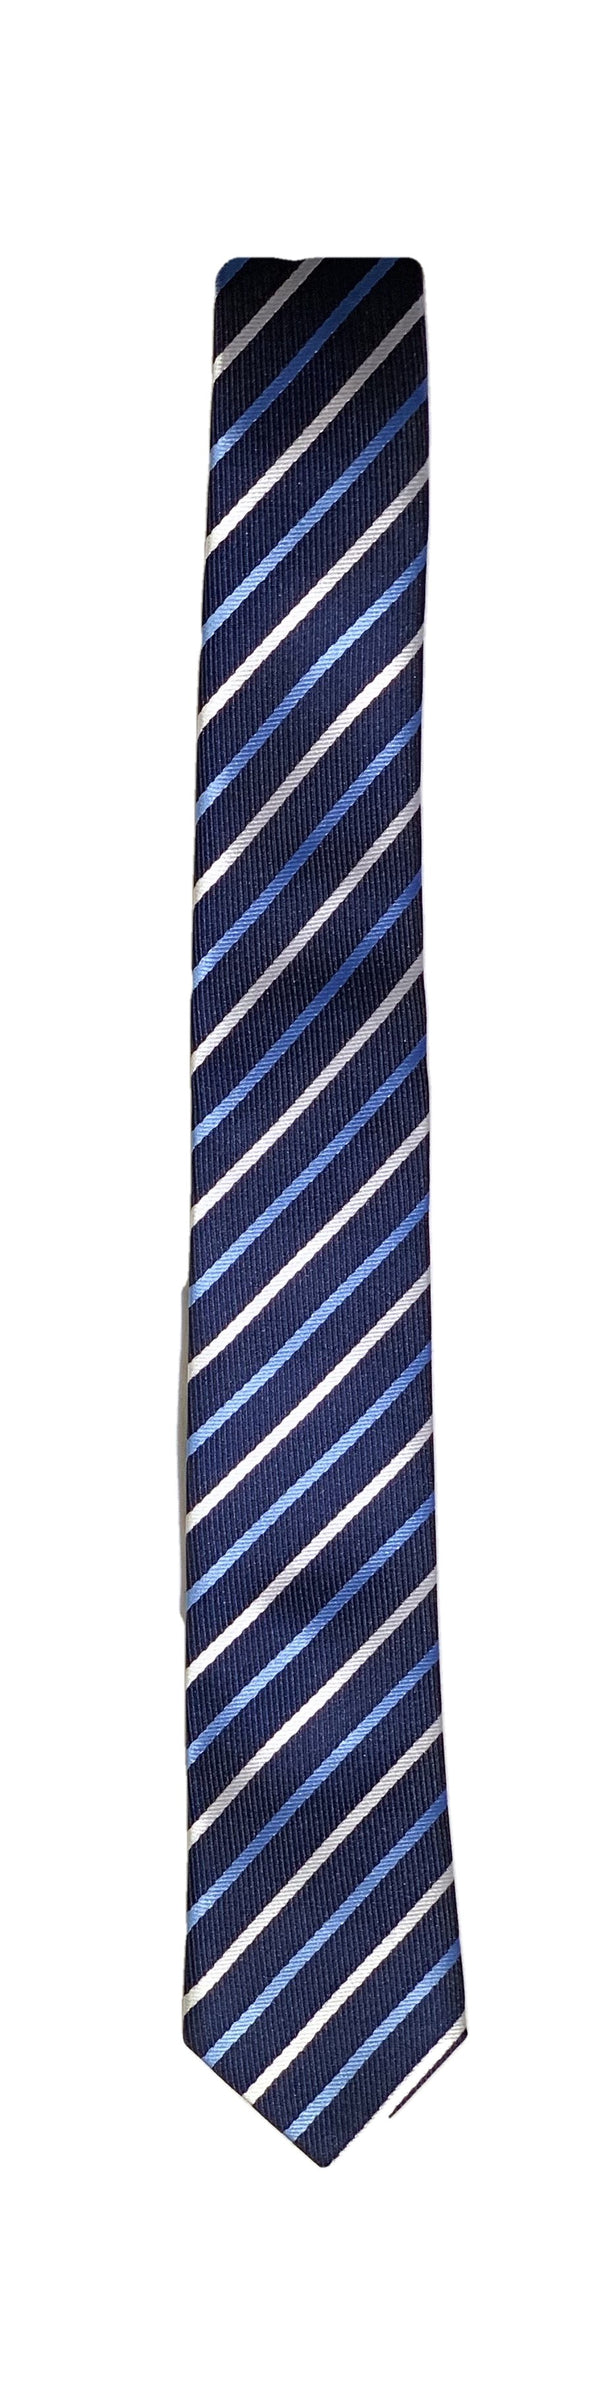 "TIE BOYS STRIPED, 48"" LONG"